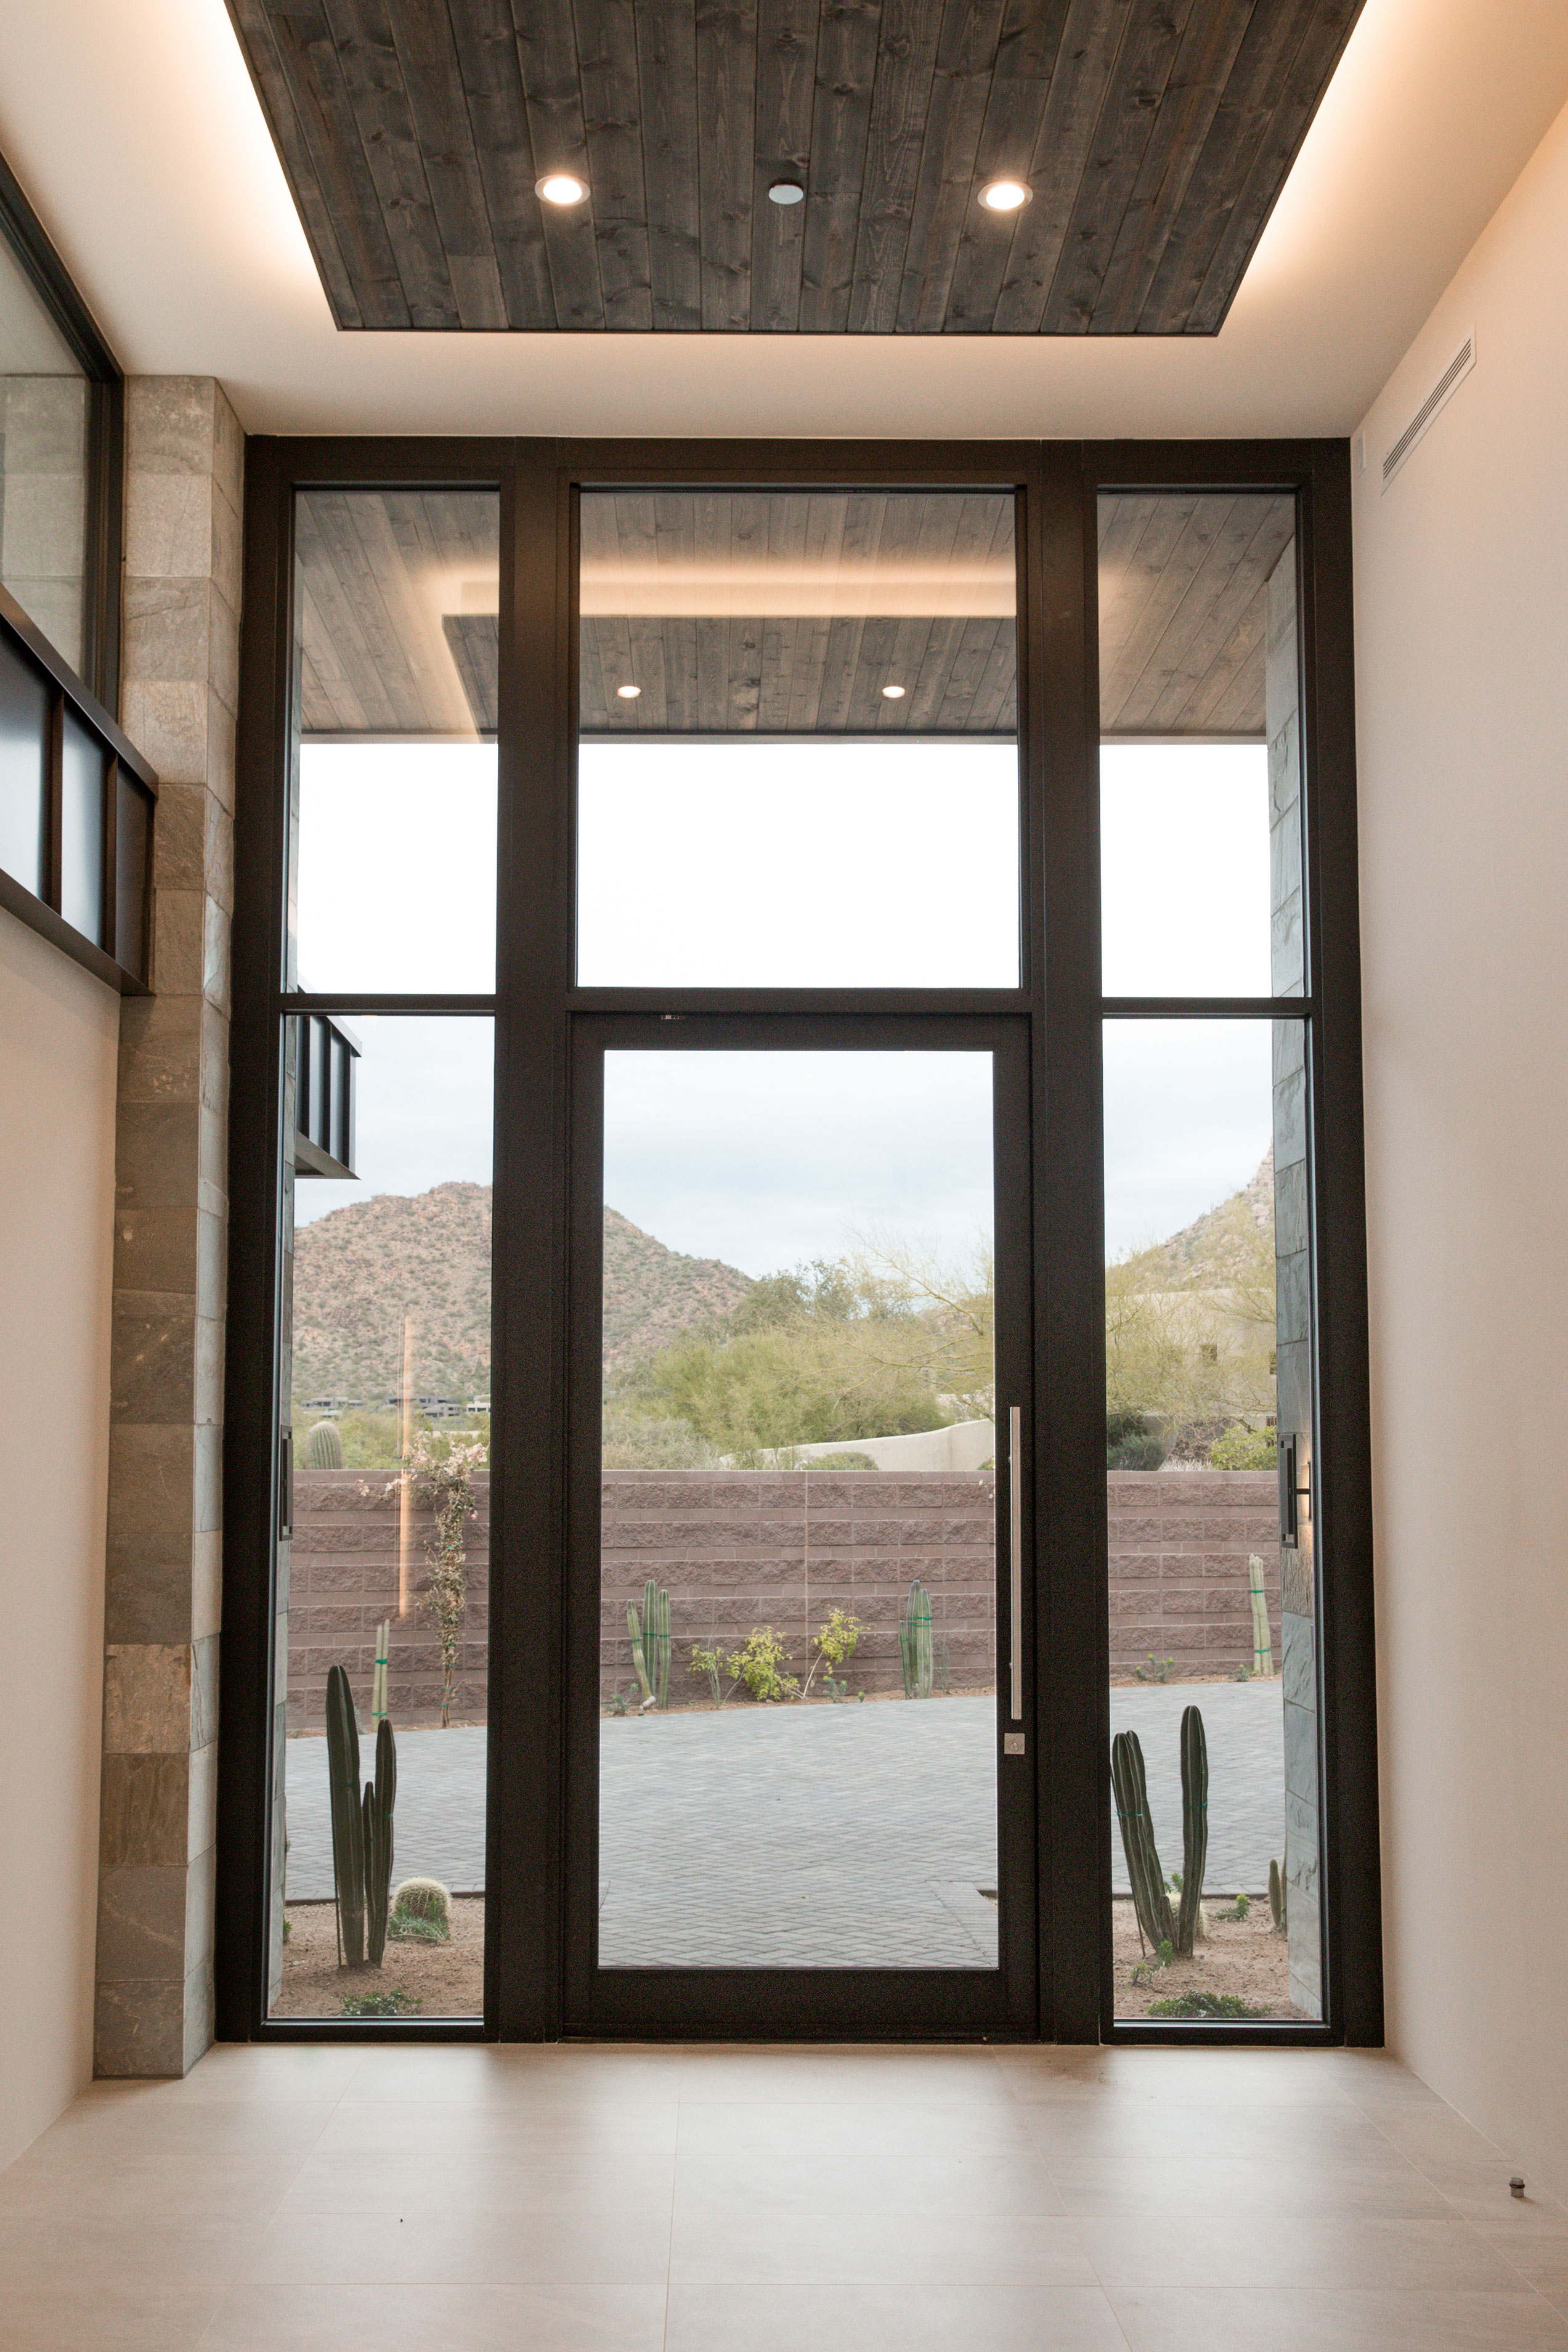 A glass pivot door provides a dramatic entrance into the home.